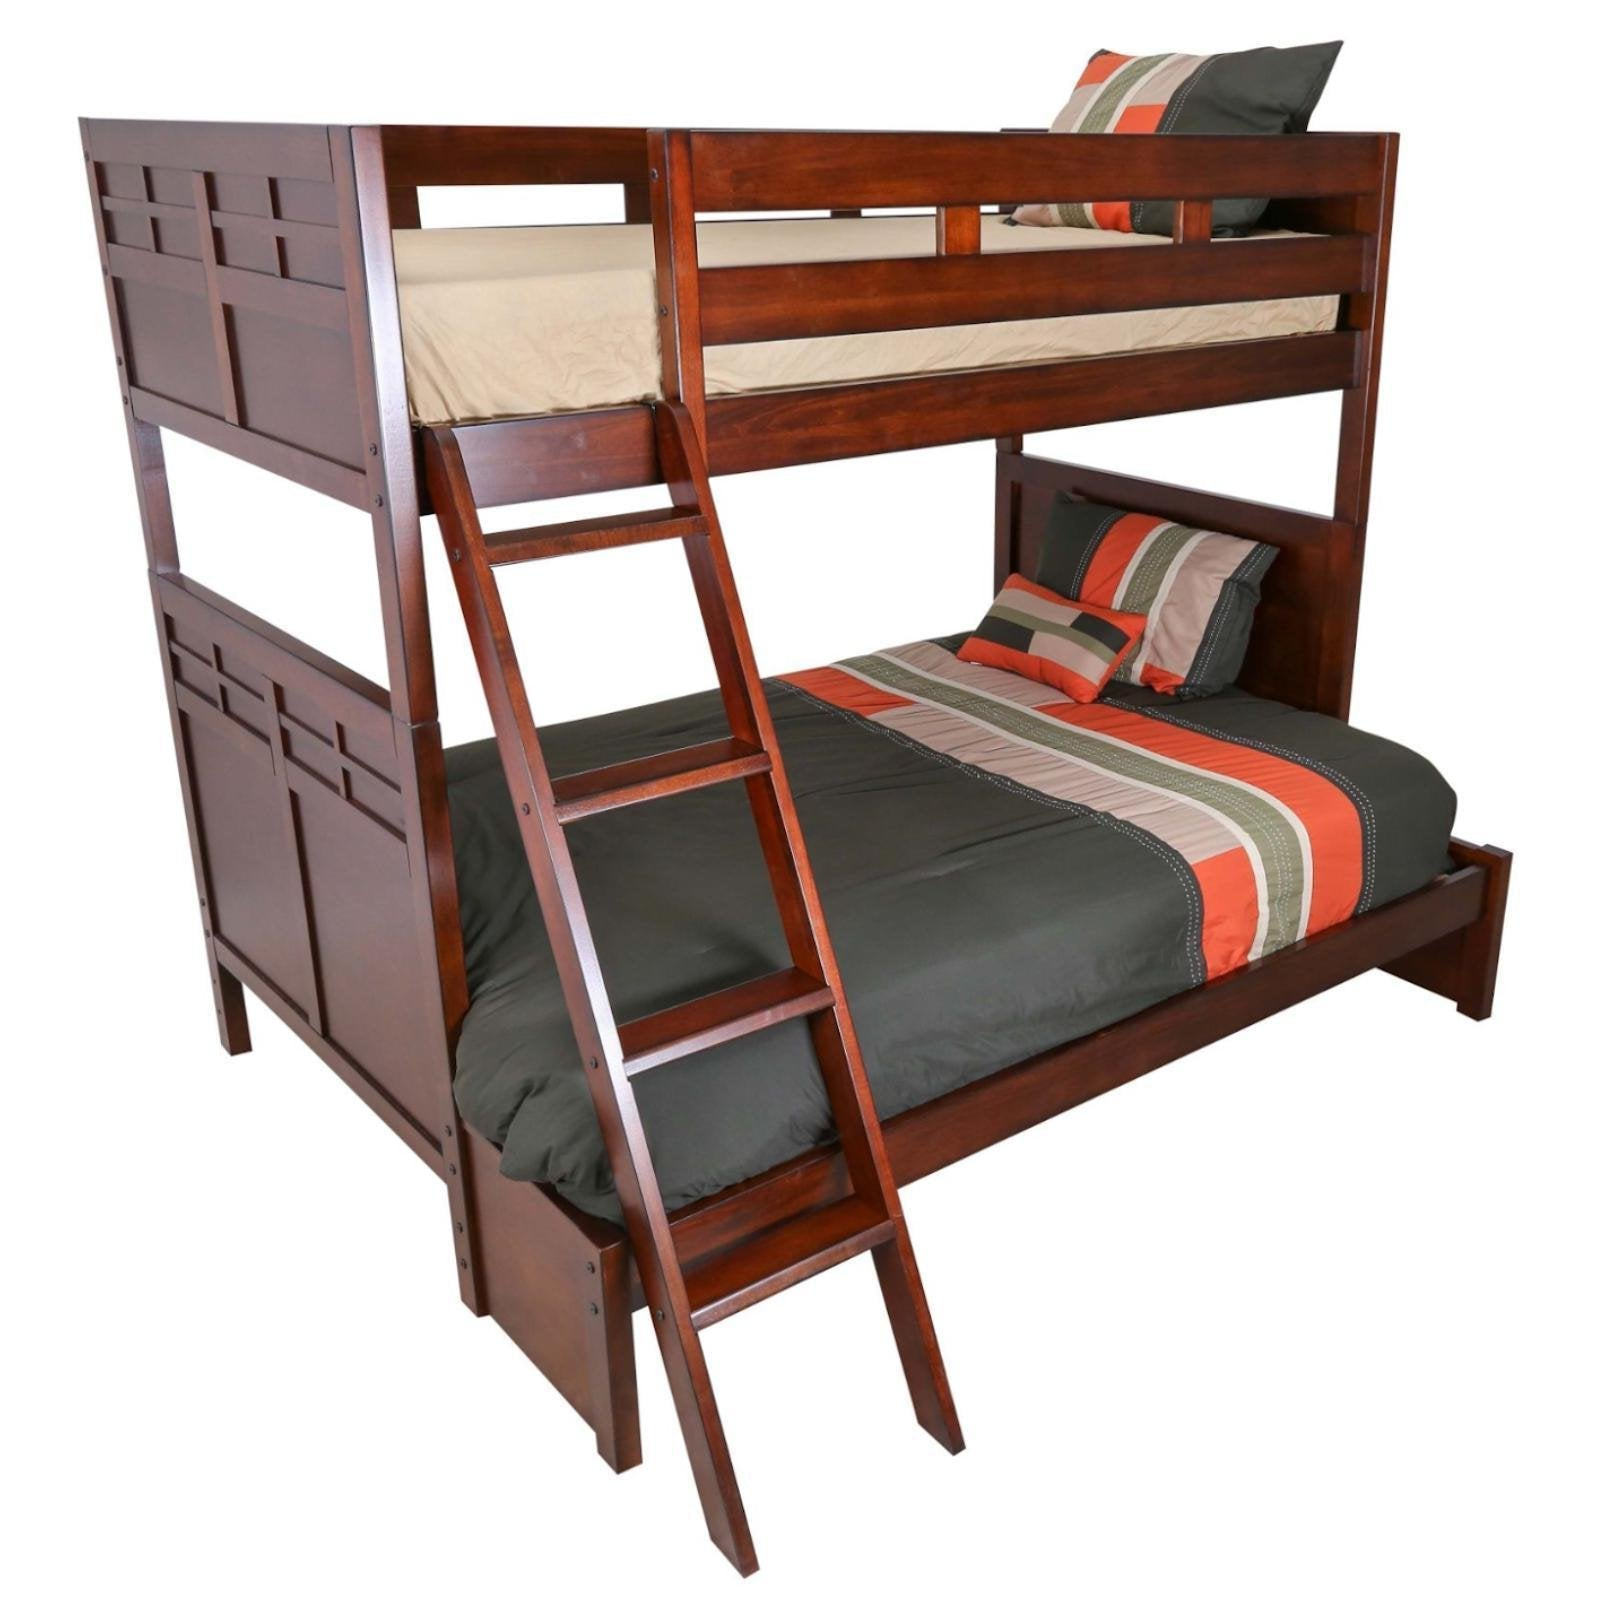 Kensington Twinfull Bunk Bed With Under Bed Storage